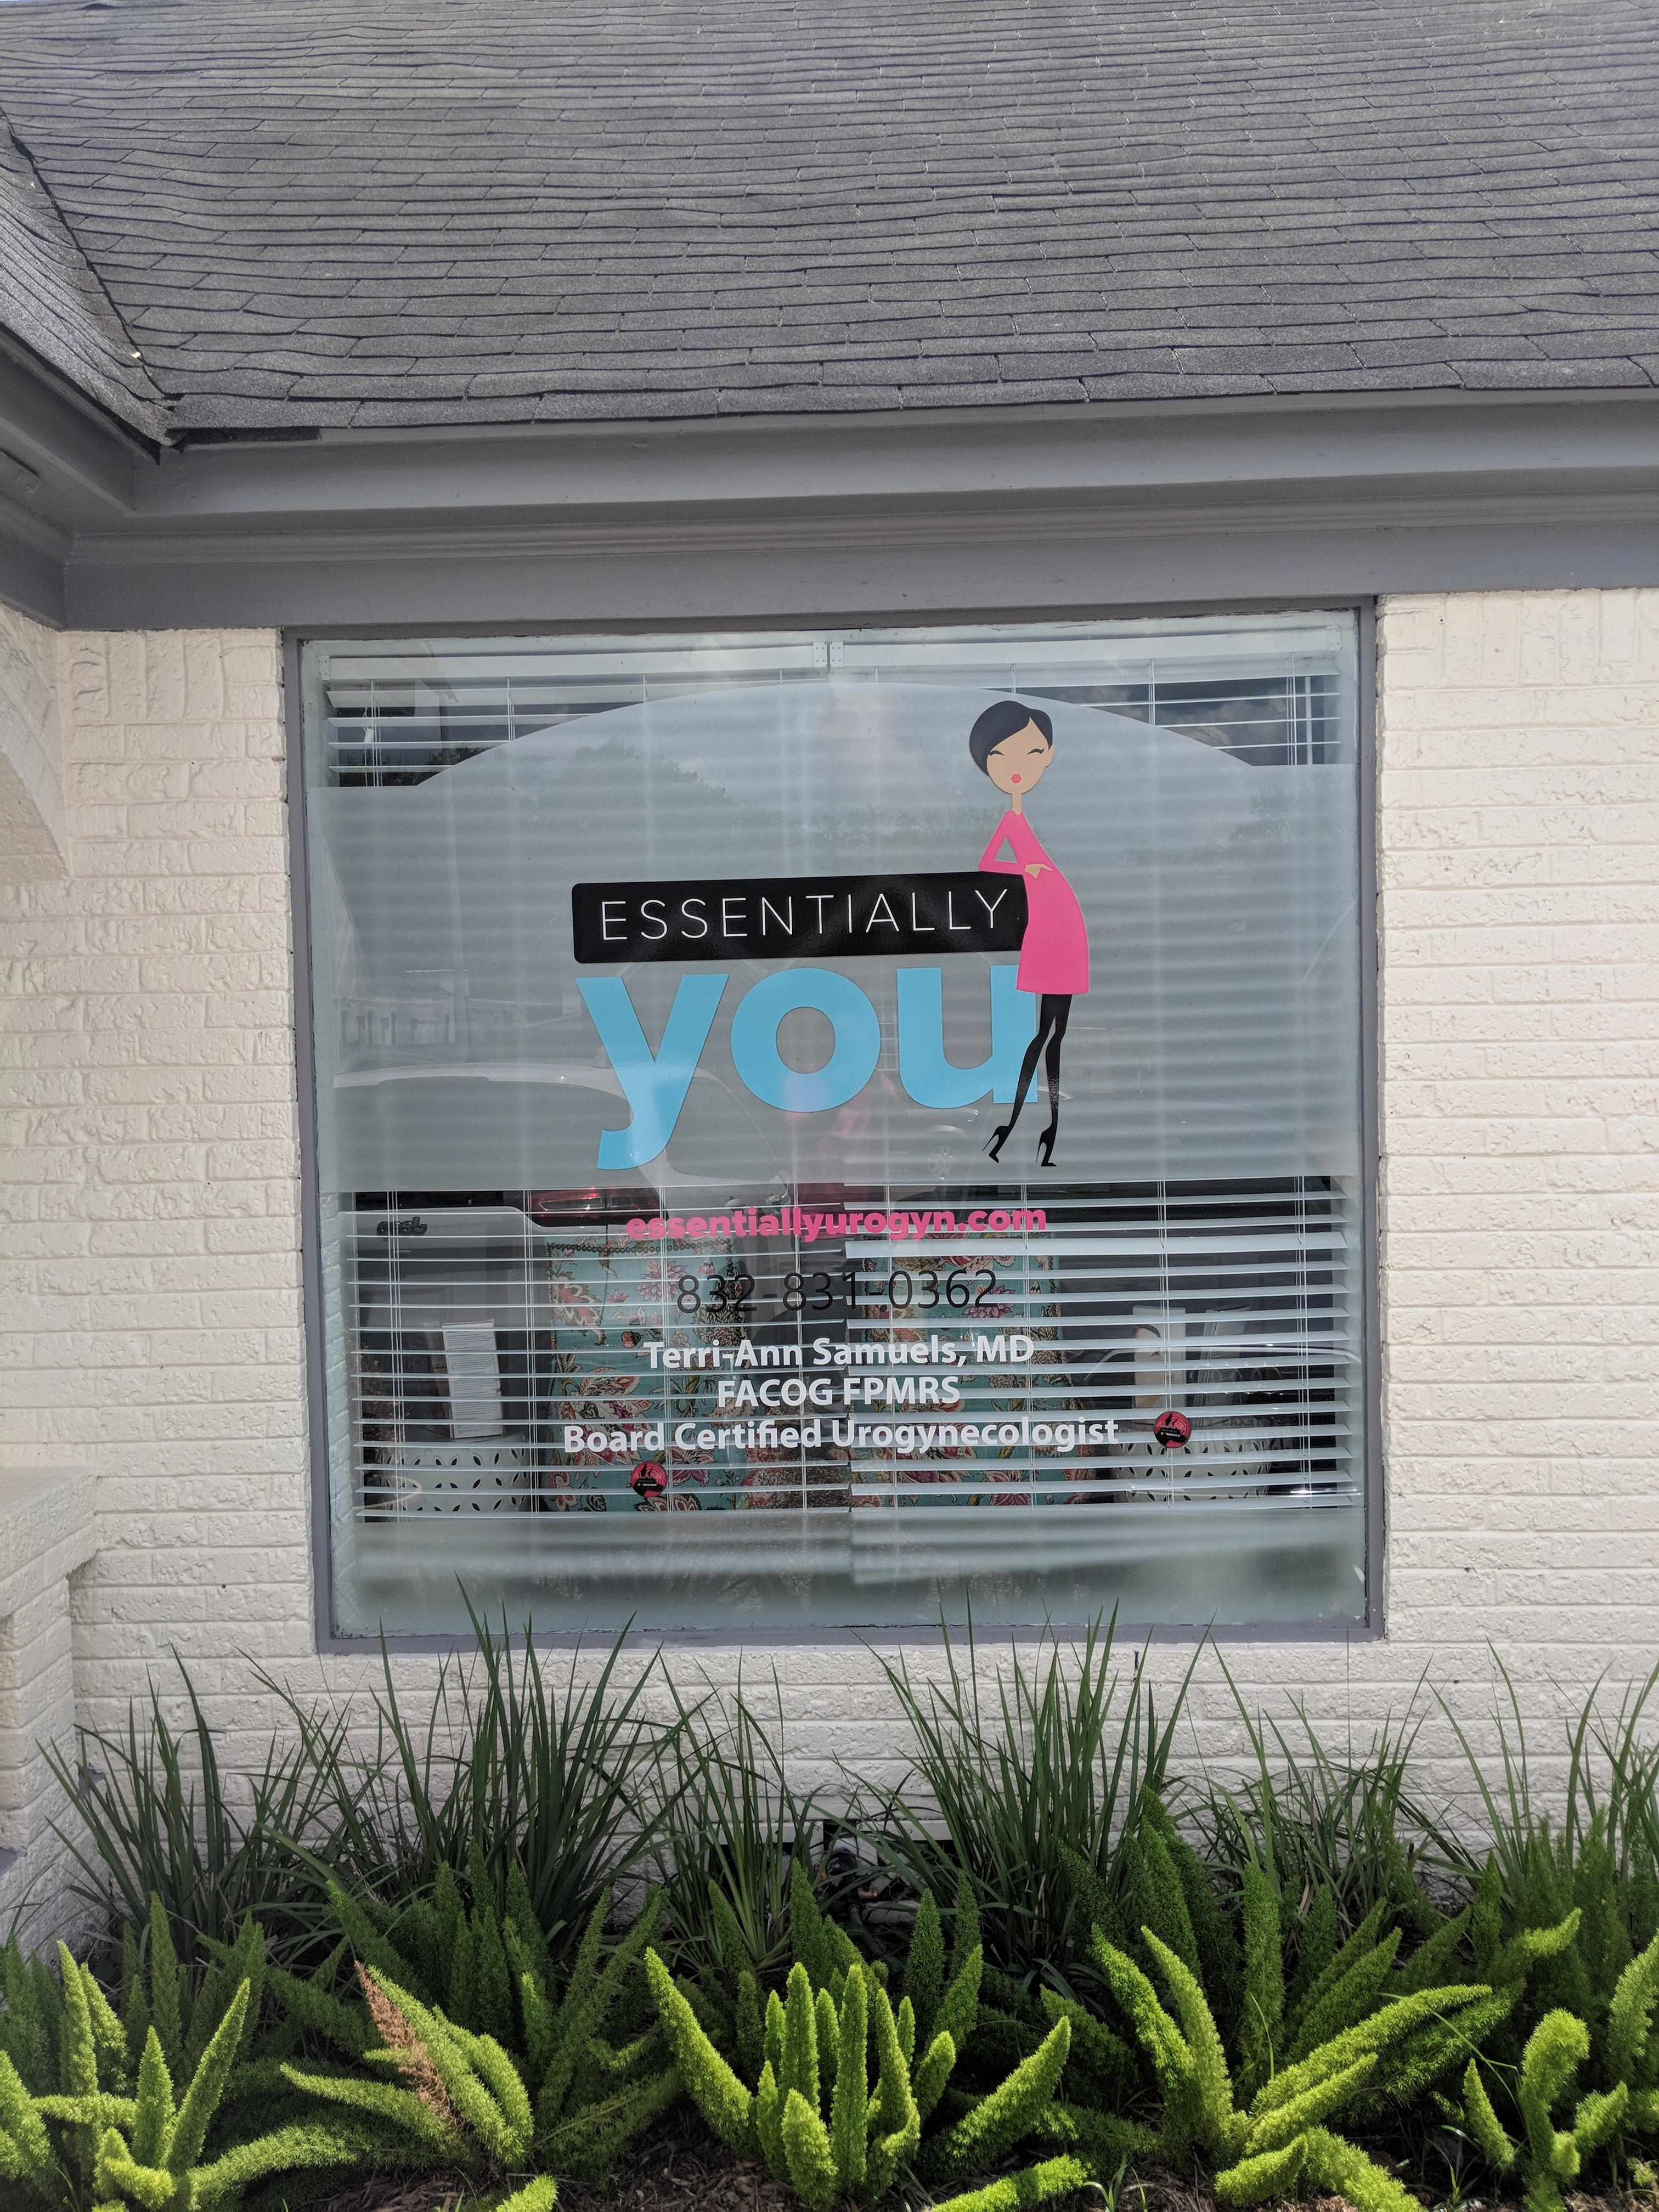 Essentially You by Terri - Ann Samuels MD image 1